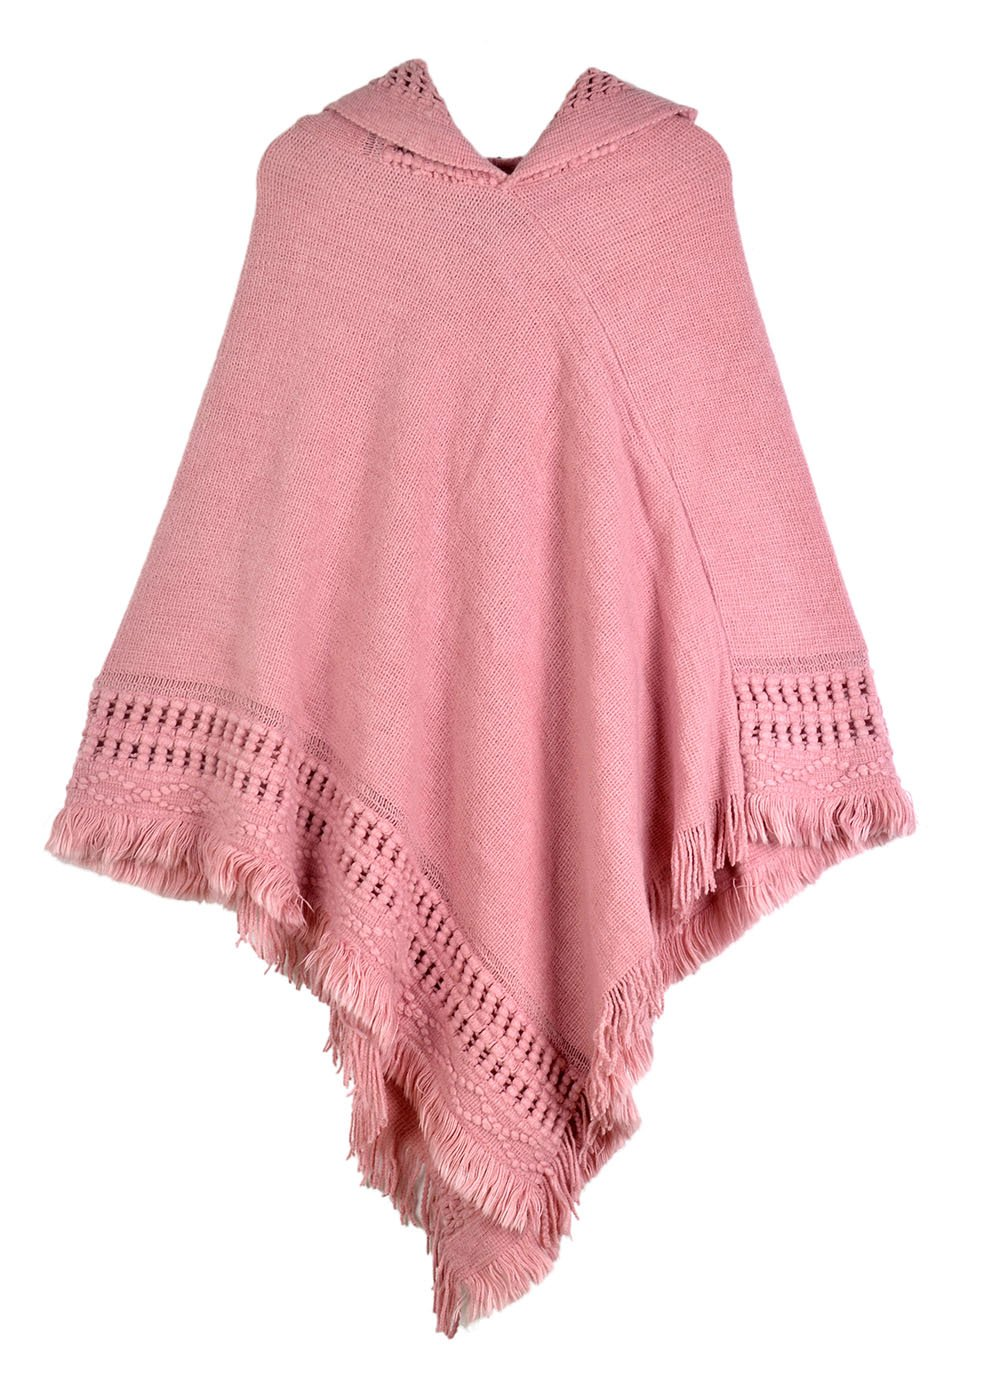 Womens Knitted Hooded Poncho Tops Shawl Cape Batwing Blouse With Fringed Sides For Lady (Pink)